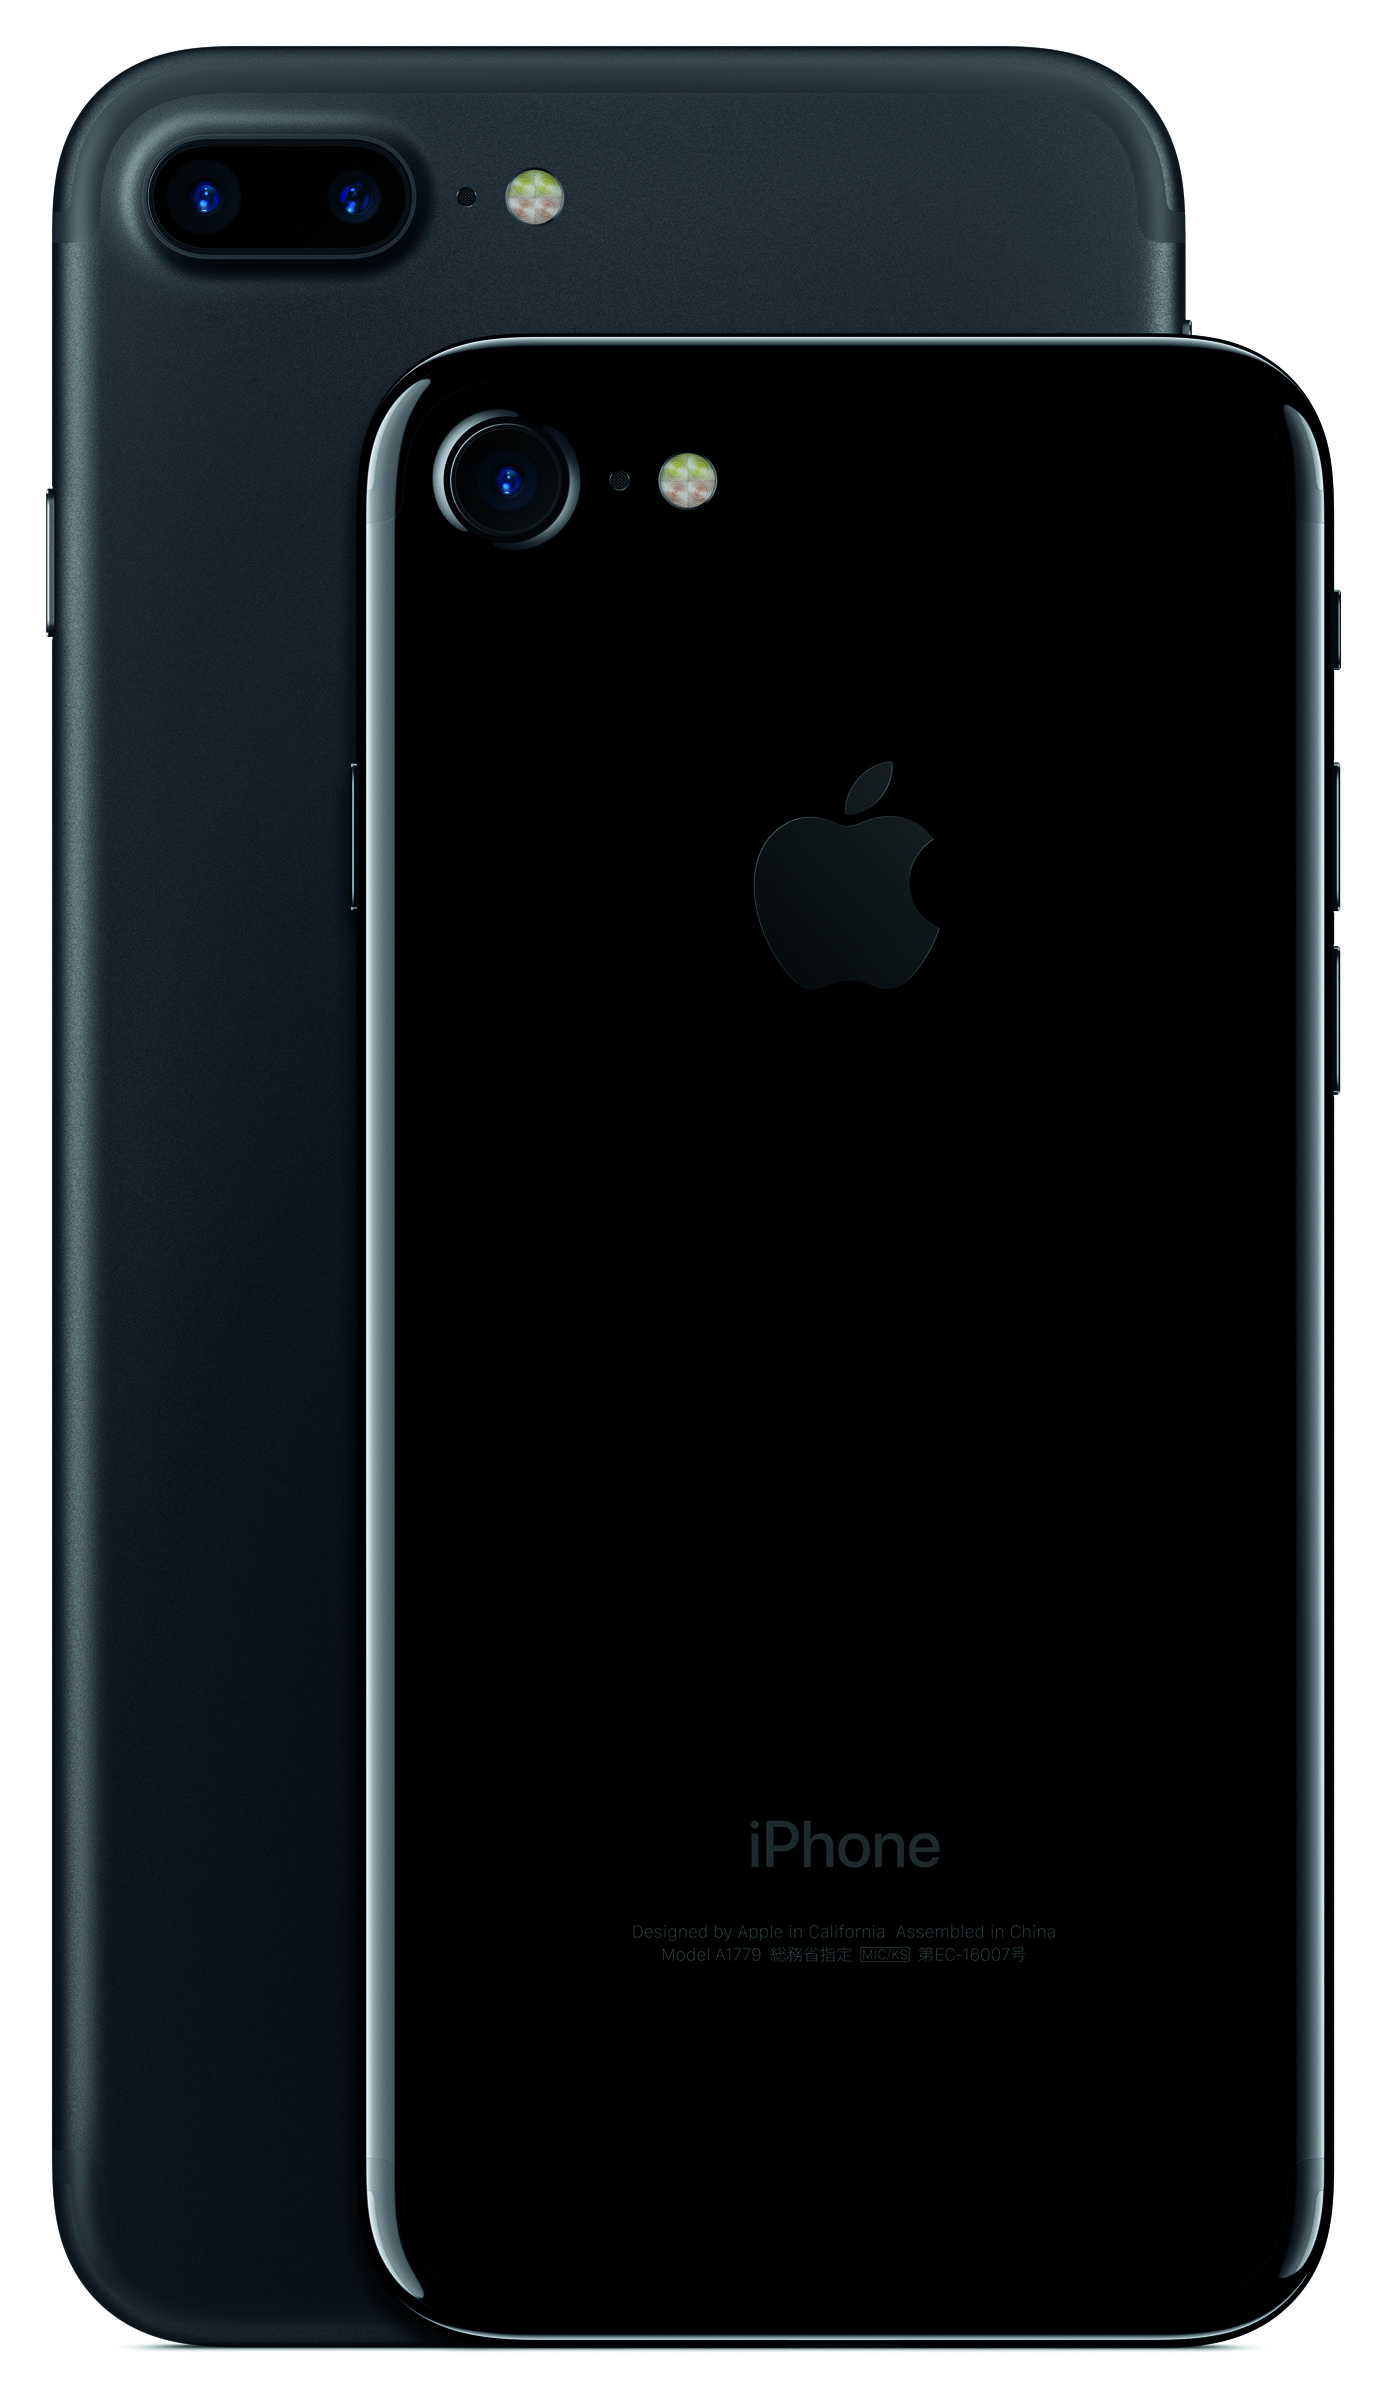 iphone 7 model compares both black iphone 7 models 11540